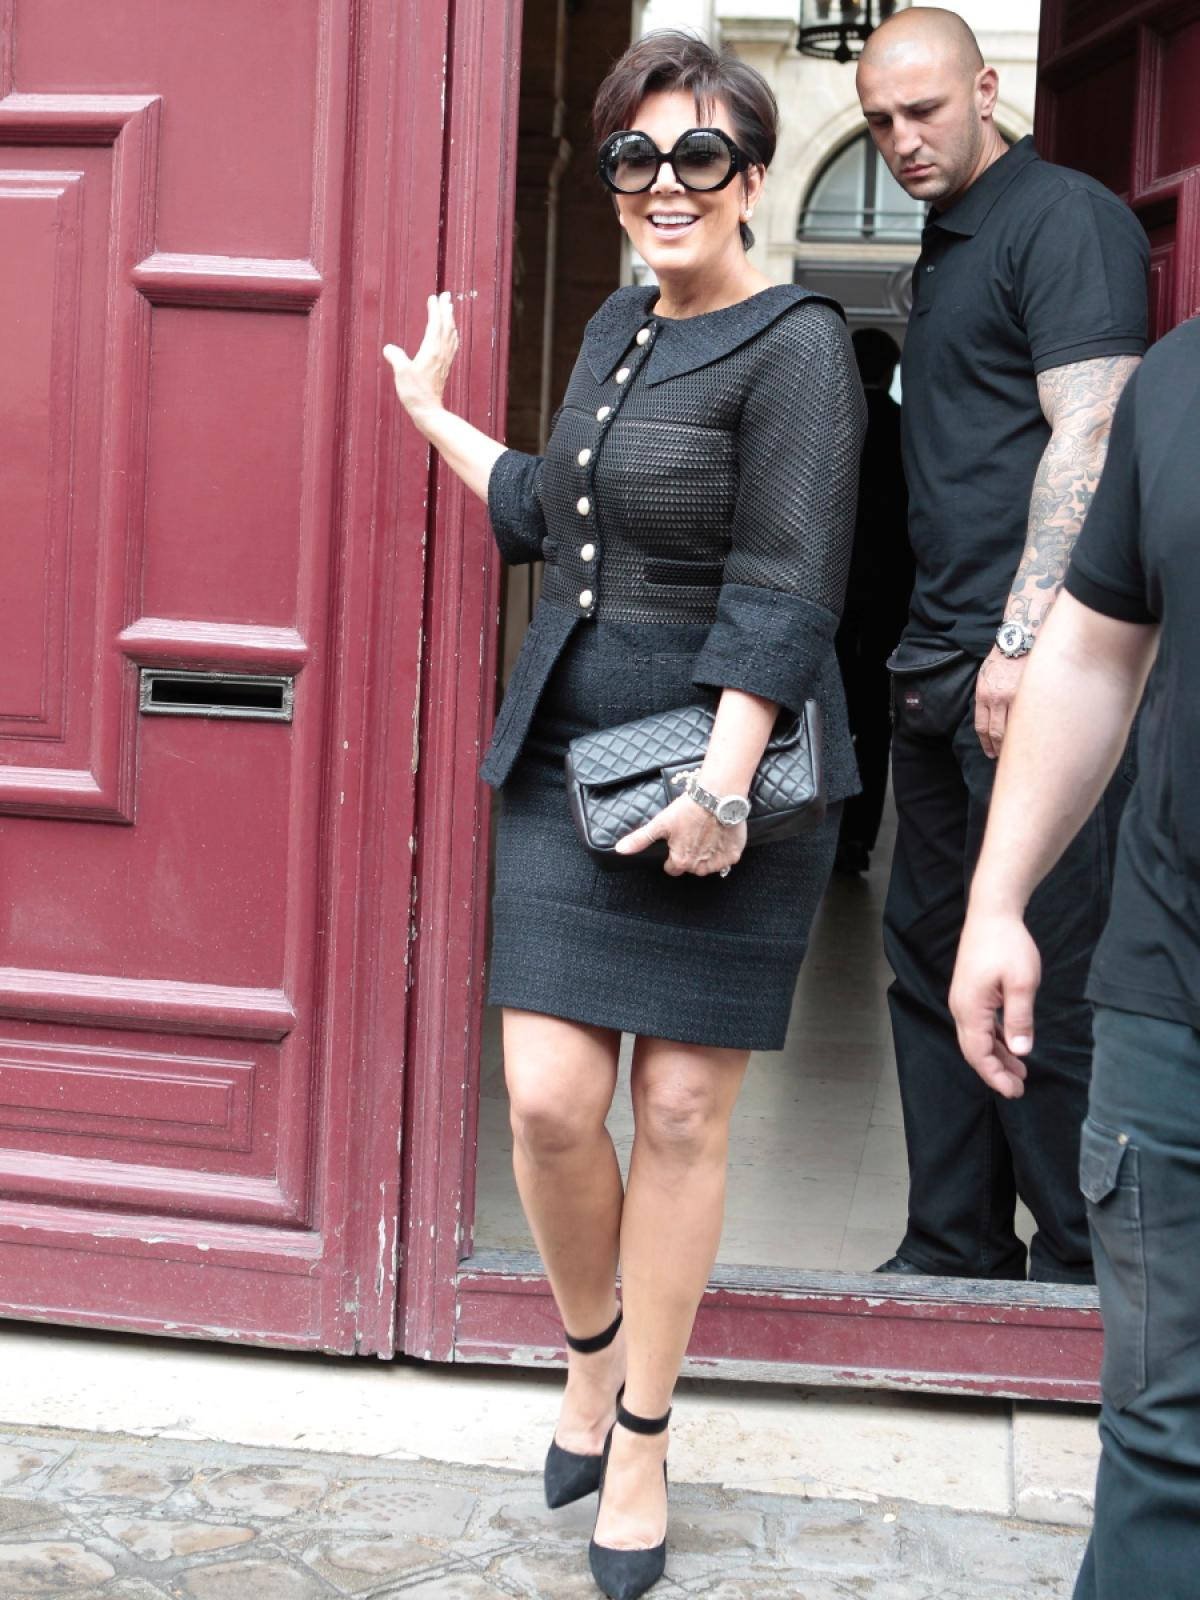 Kris Jenner leaving Kanye West Paris apartment